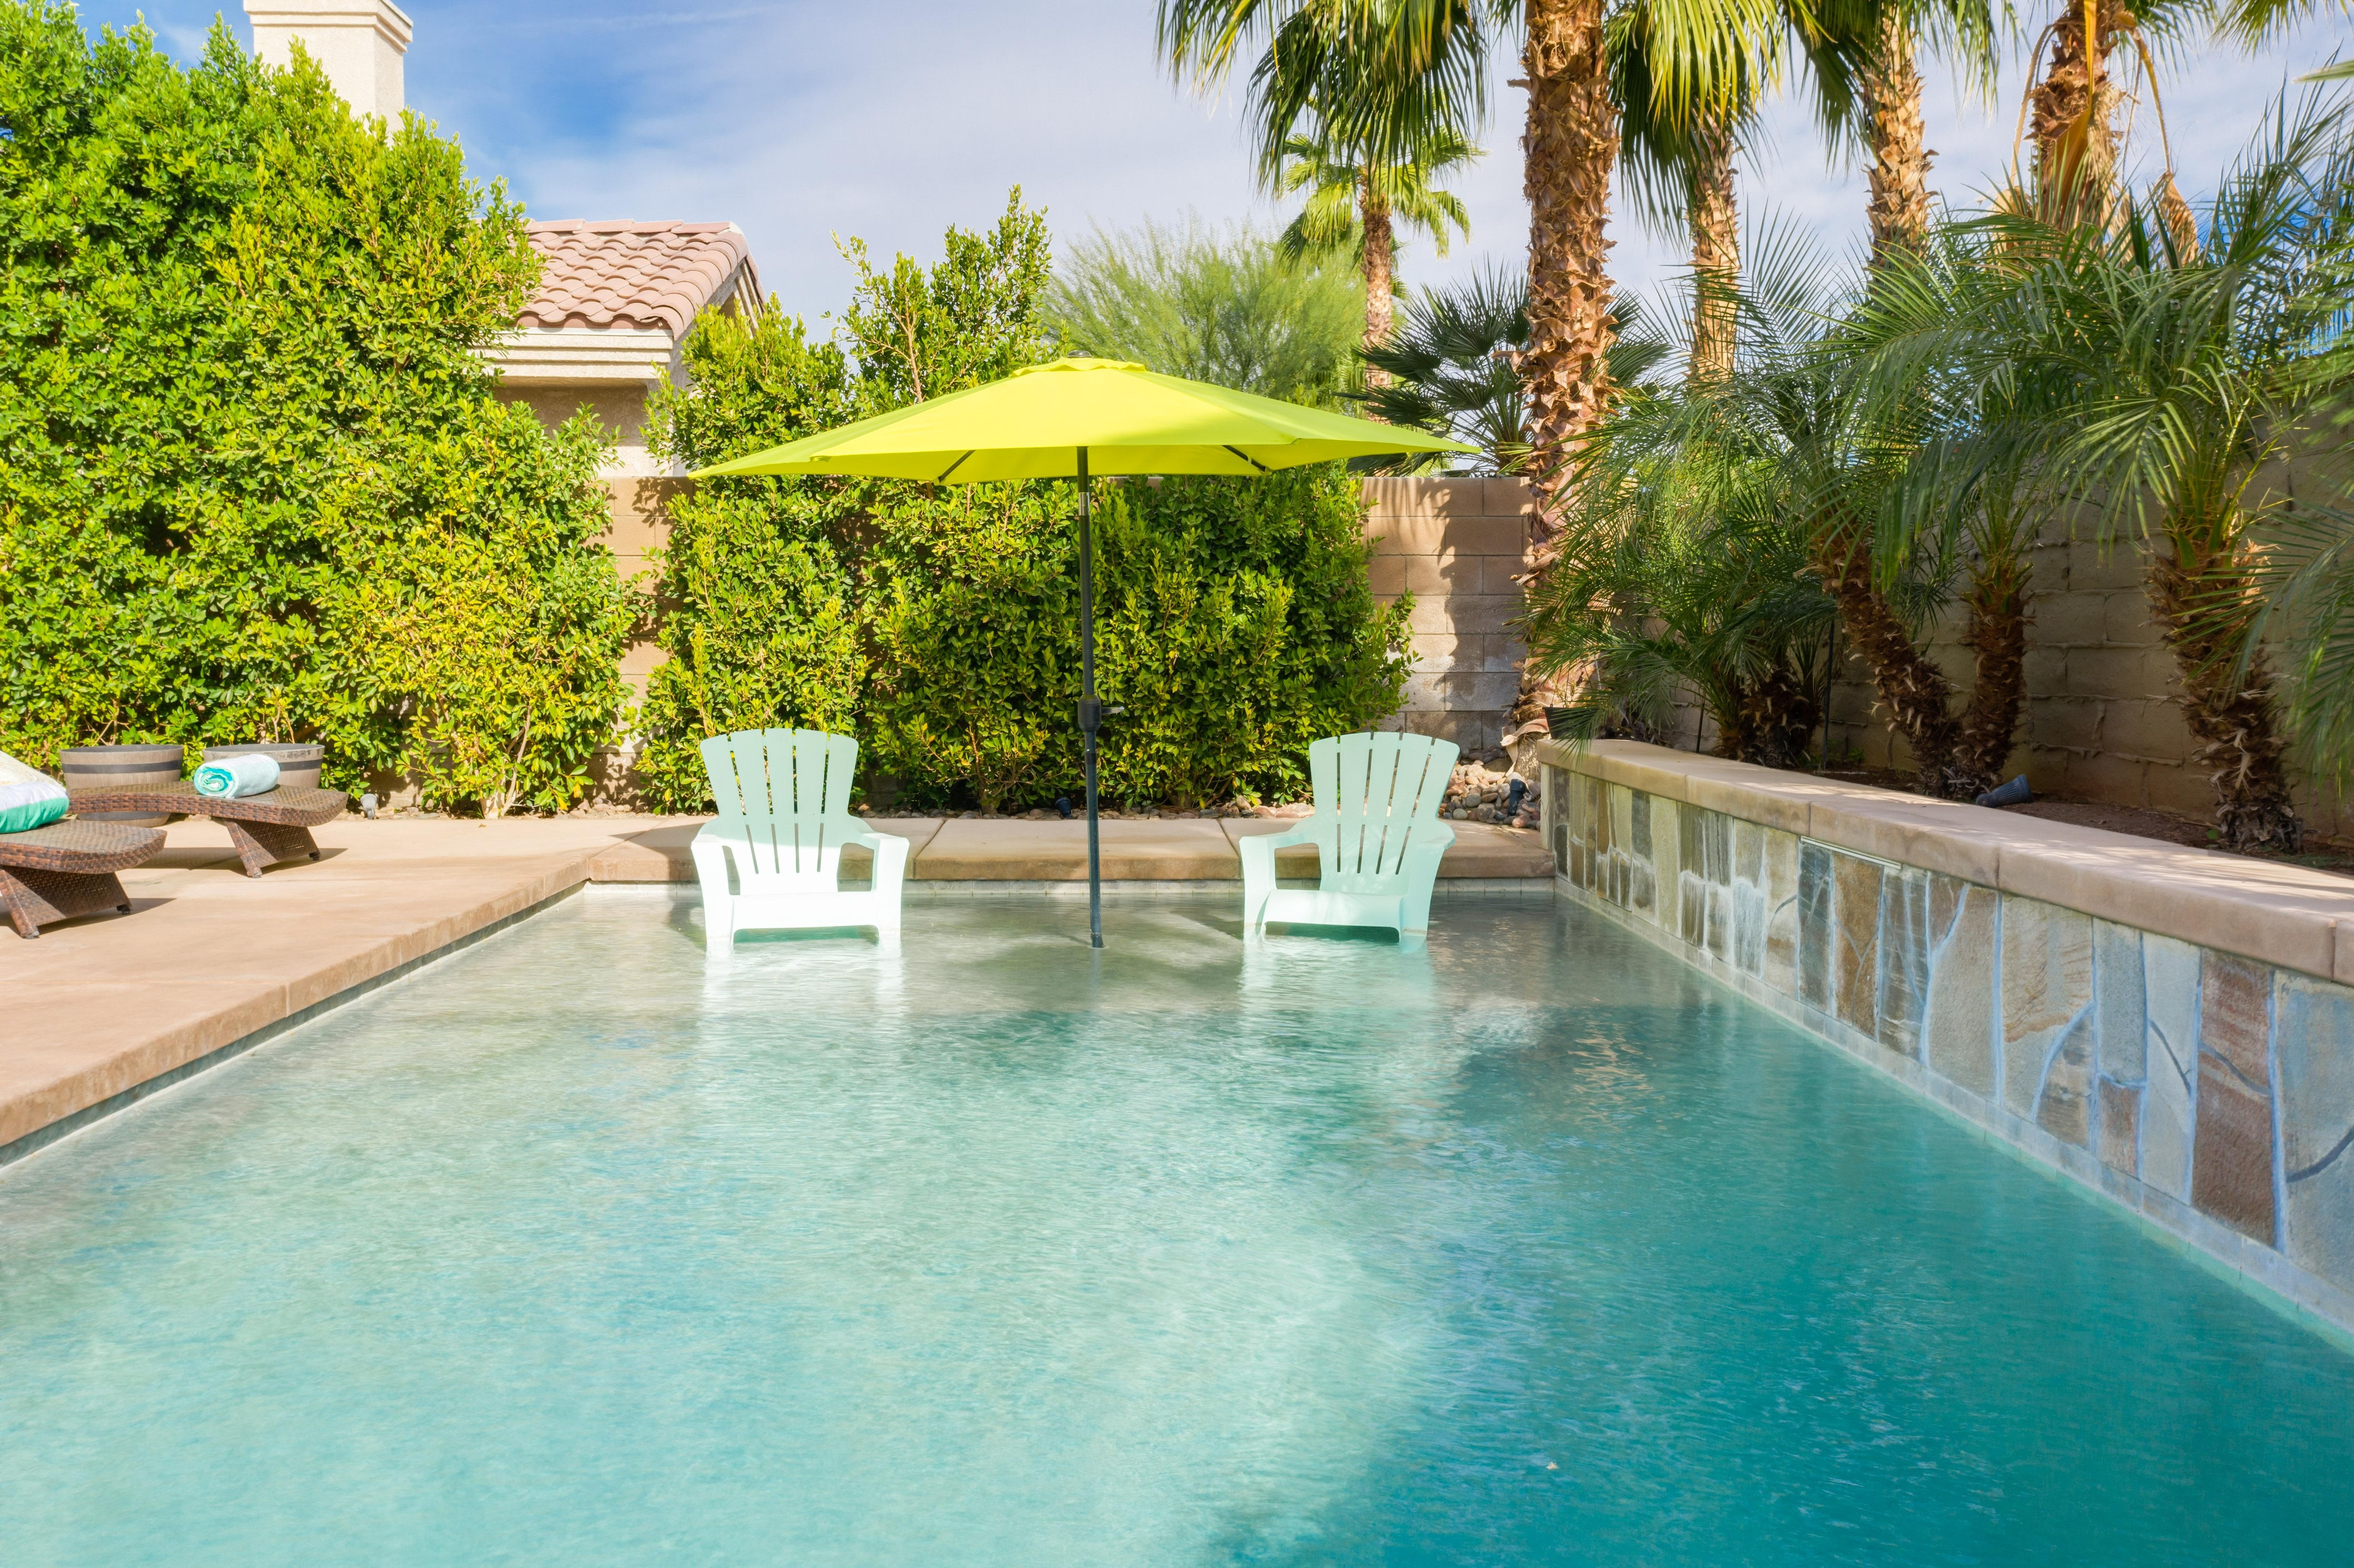 Take a relaxing dip in the 7'-deep heated pool with shallow entry.